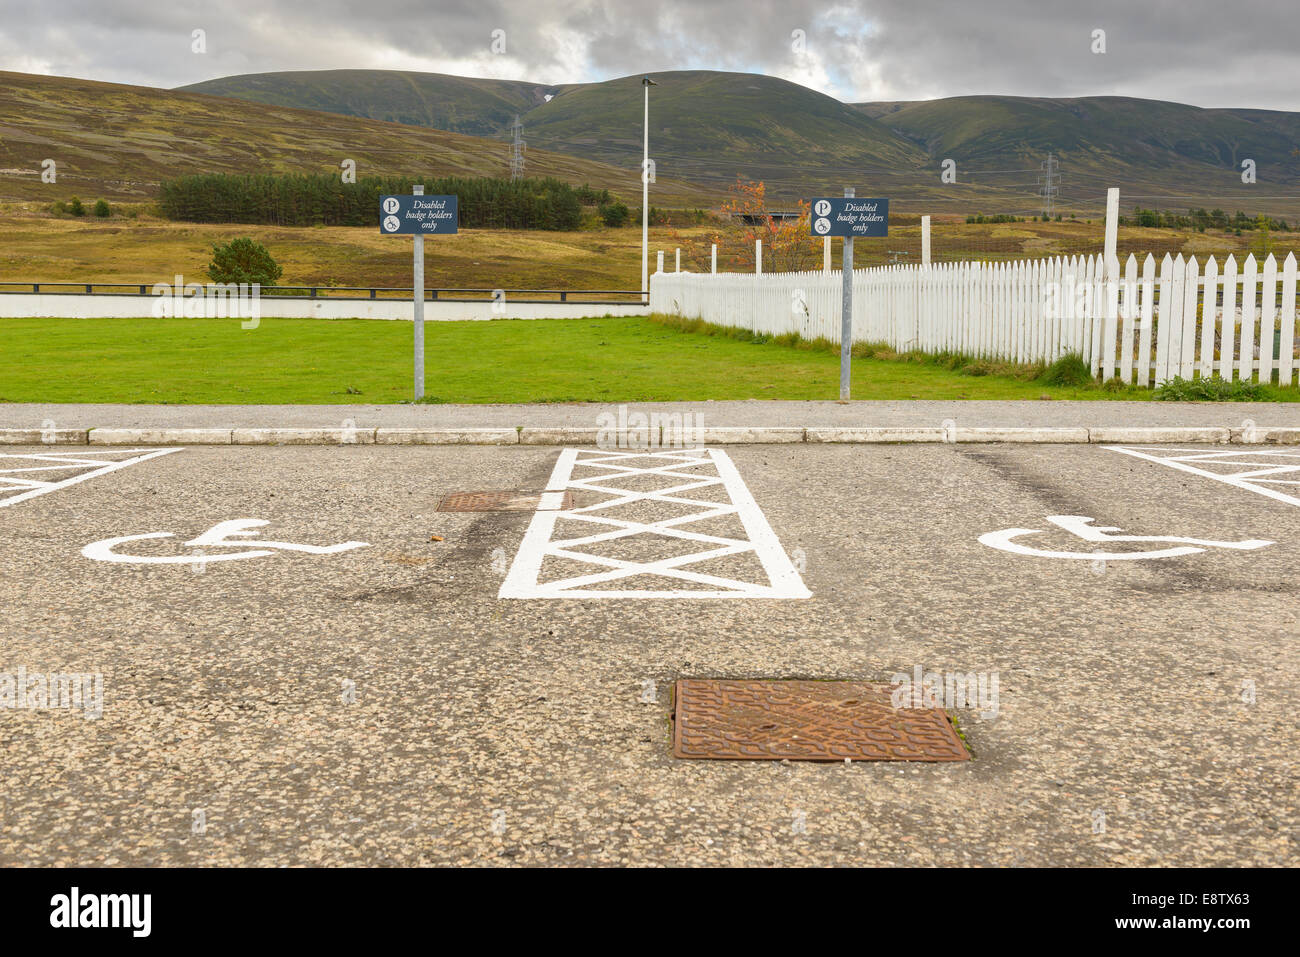 Two disabled parking spaces in a tarmac car park, both unoccupied. - Stock Image